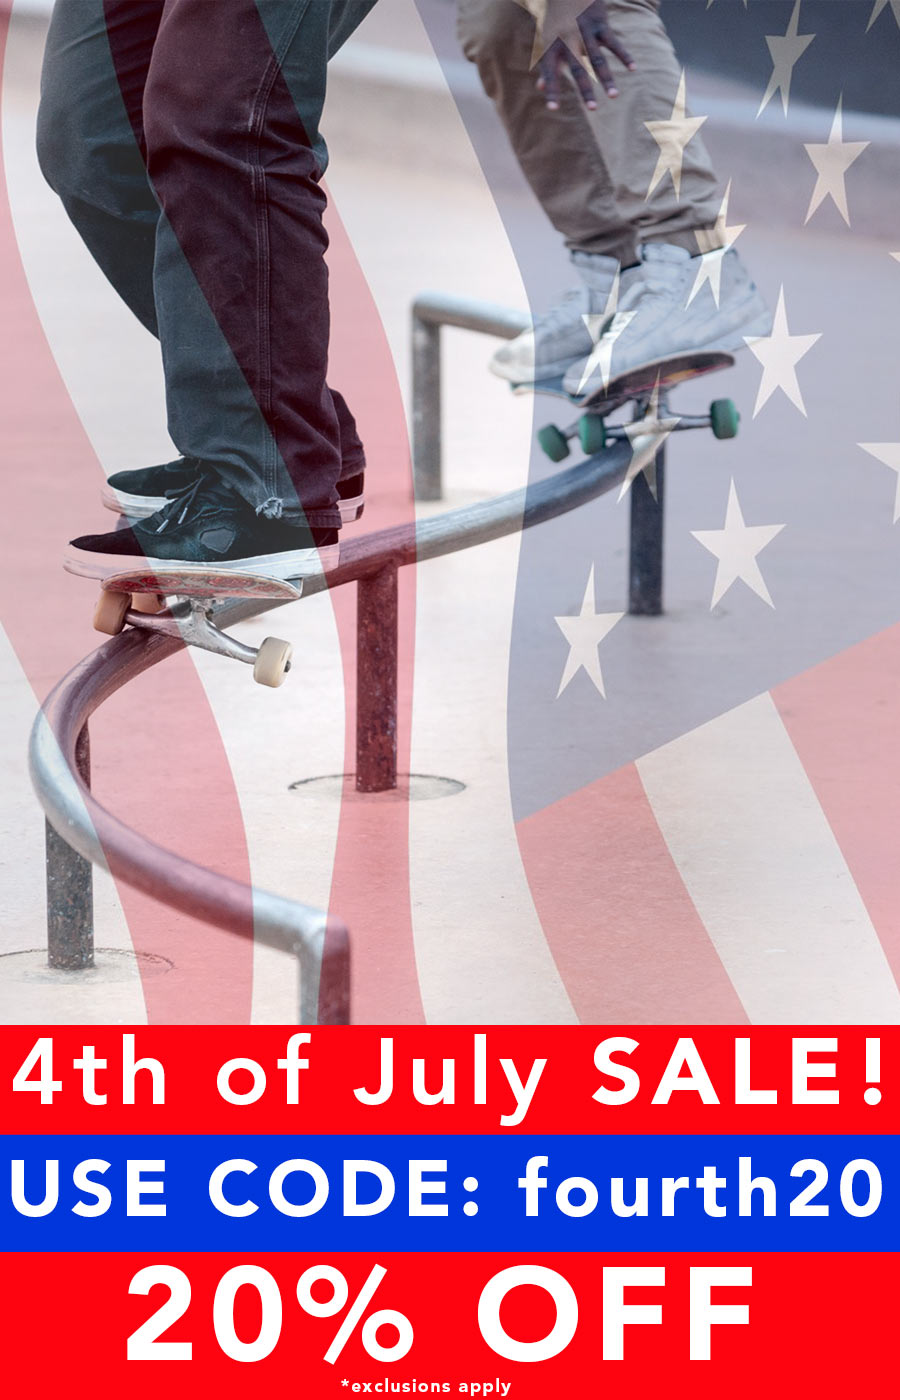 Fourth of July Sale - Get 20% OFF